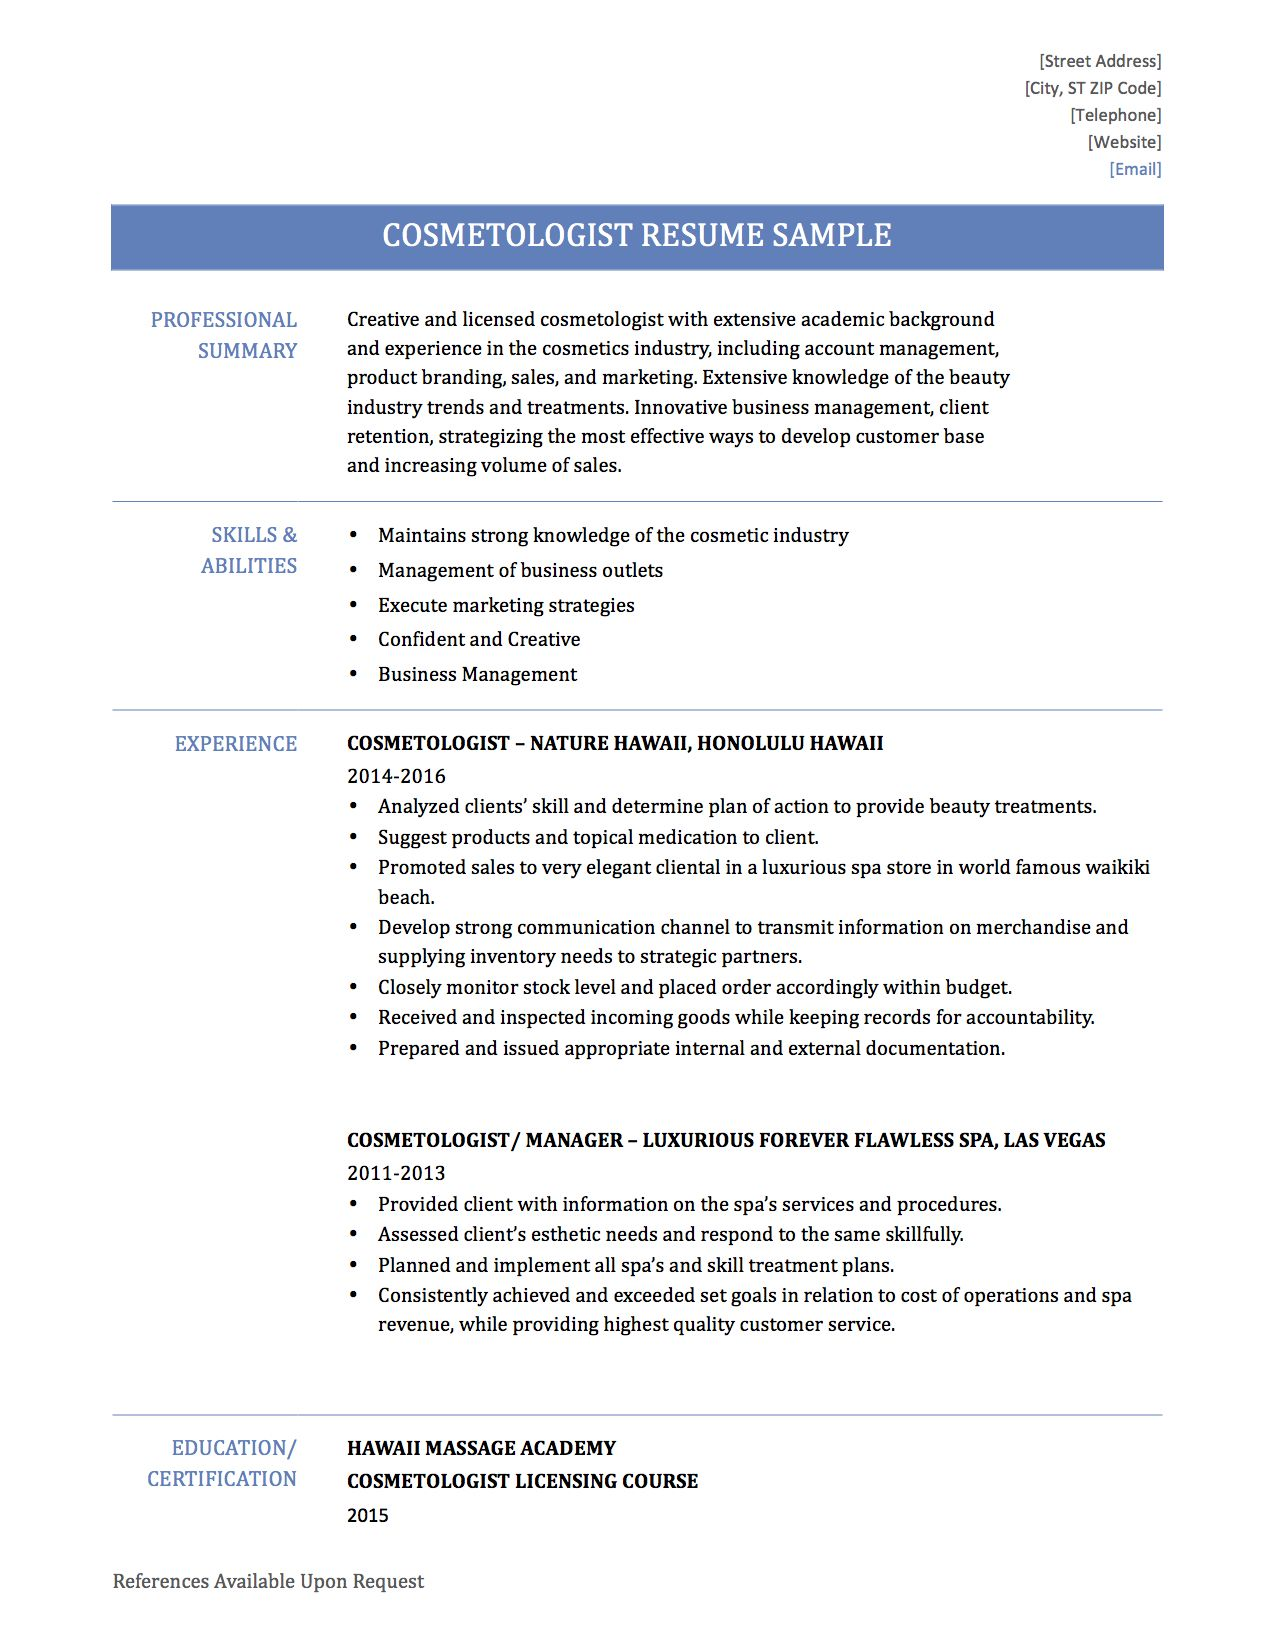 Revenue Agent Sample Resume Resume Sample Cosmetologist Cosmetology Objective Master  Resume .